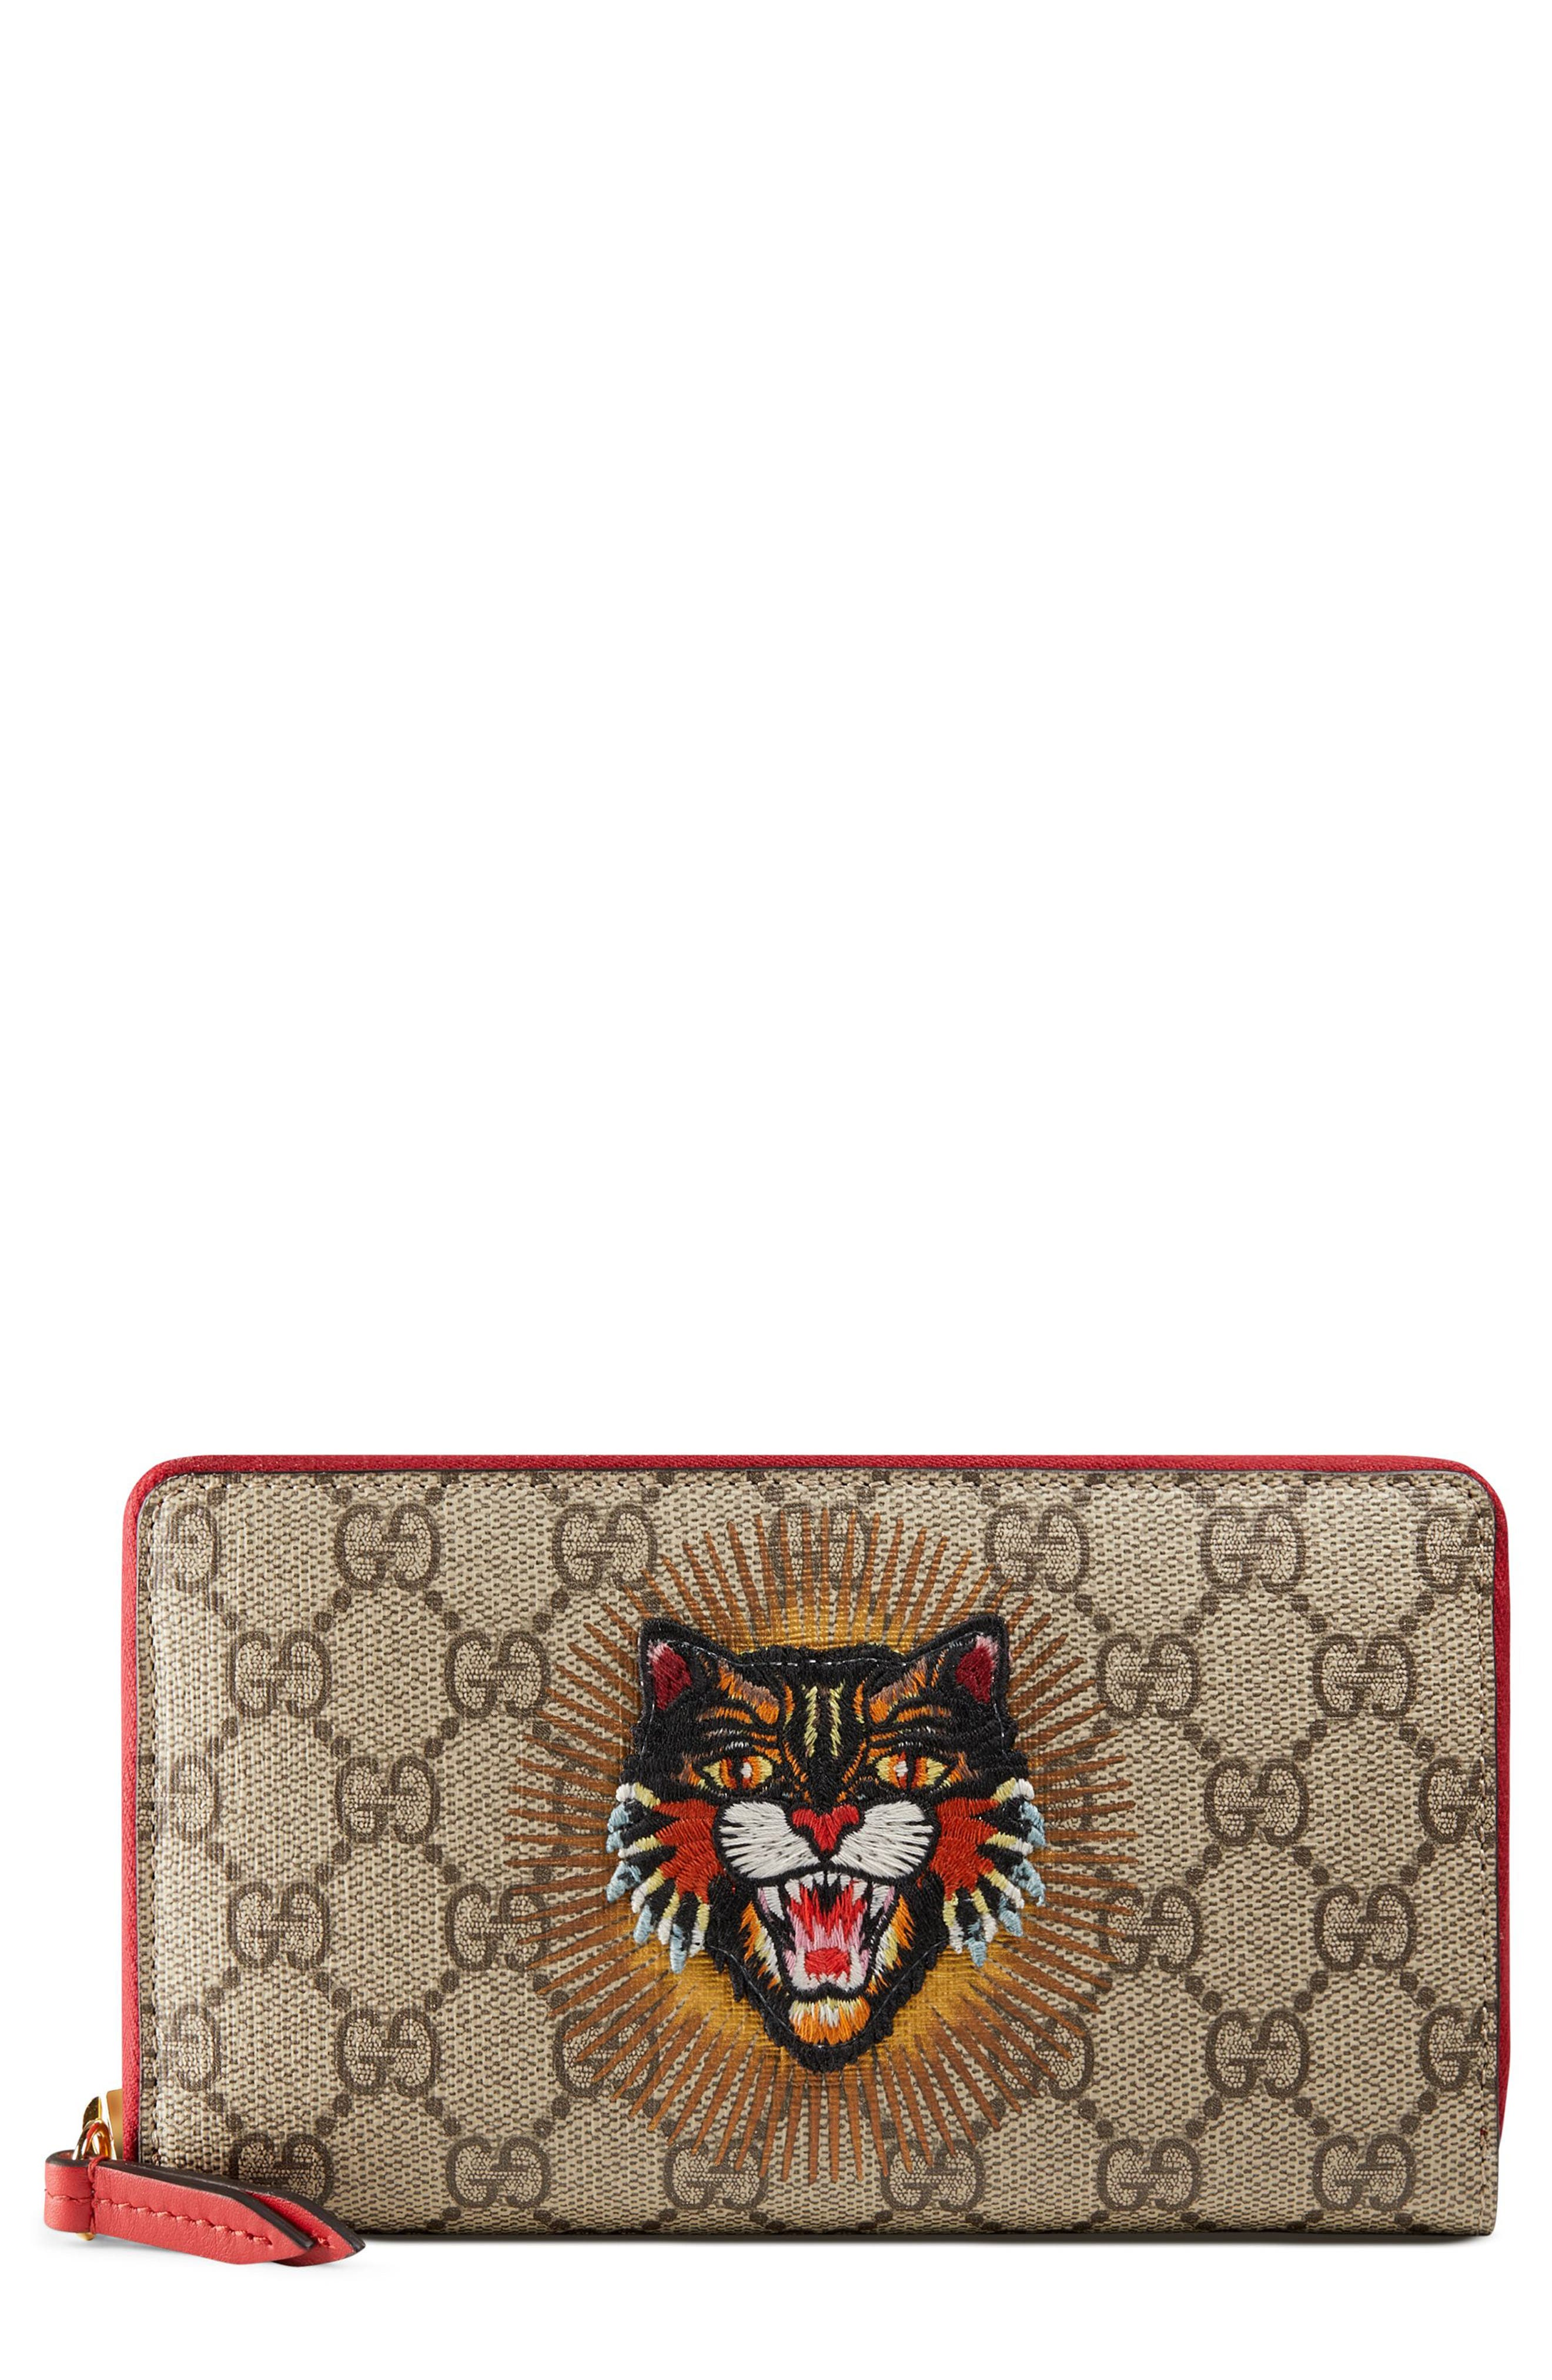 Gucci Embroidered Angry Cat GG Supreme Canvas Zip Around Wallet